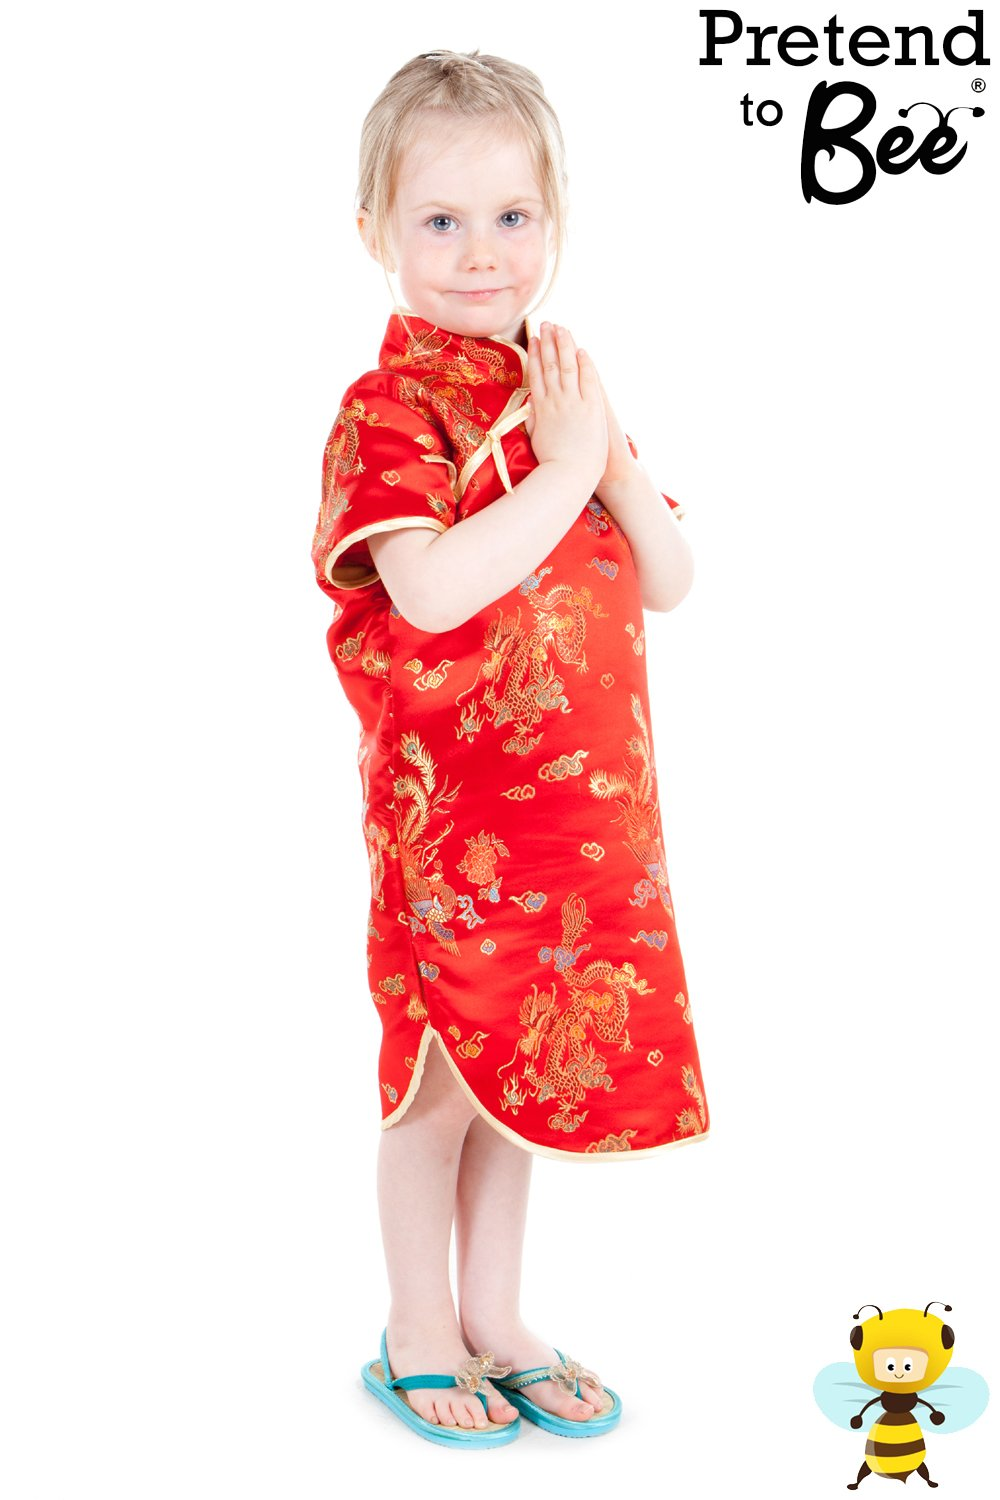 Girls Lucky Red Chinese New Year Traditional Oriental Dress Costume 3 - 5  Years: Pretend to Bee: Amazon.co.uk: Toys & Games